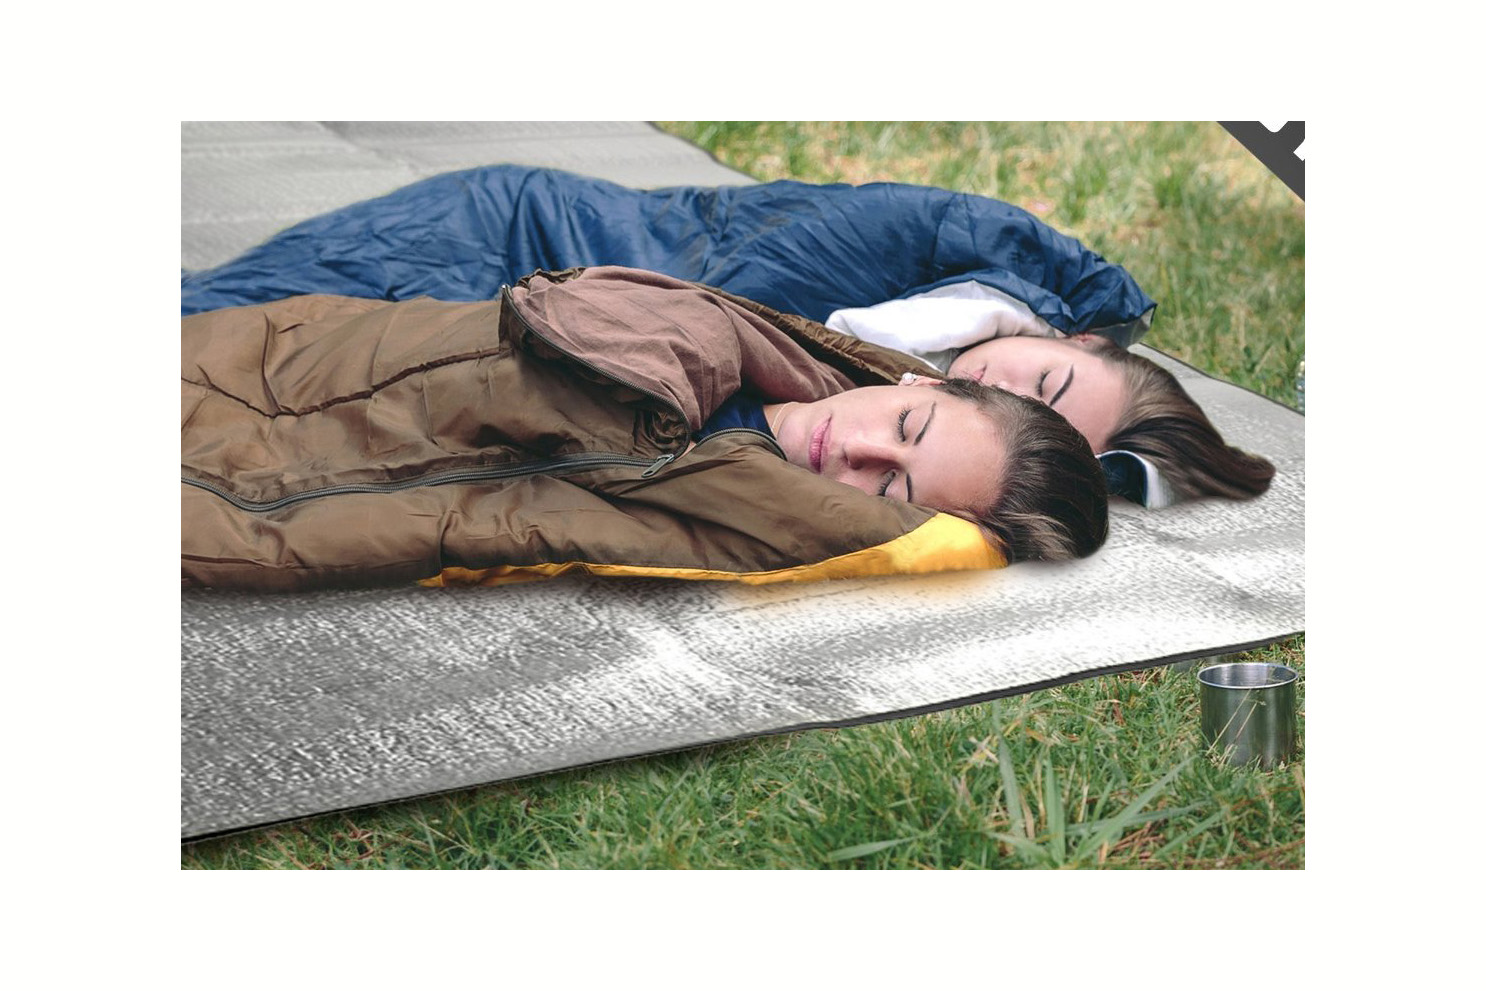 Heat Retention Sleep Pad 4.5 stars - $22 (Prime)